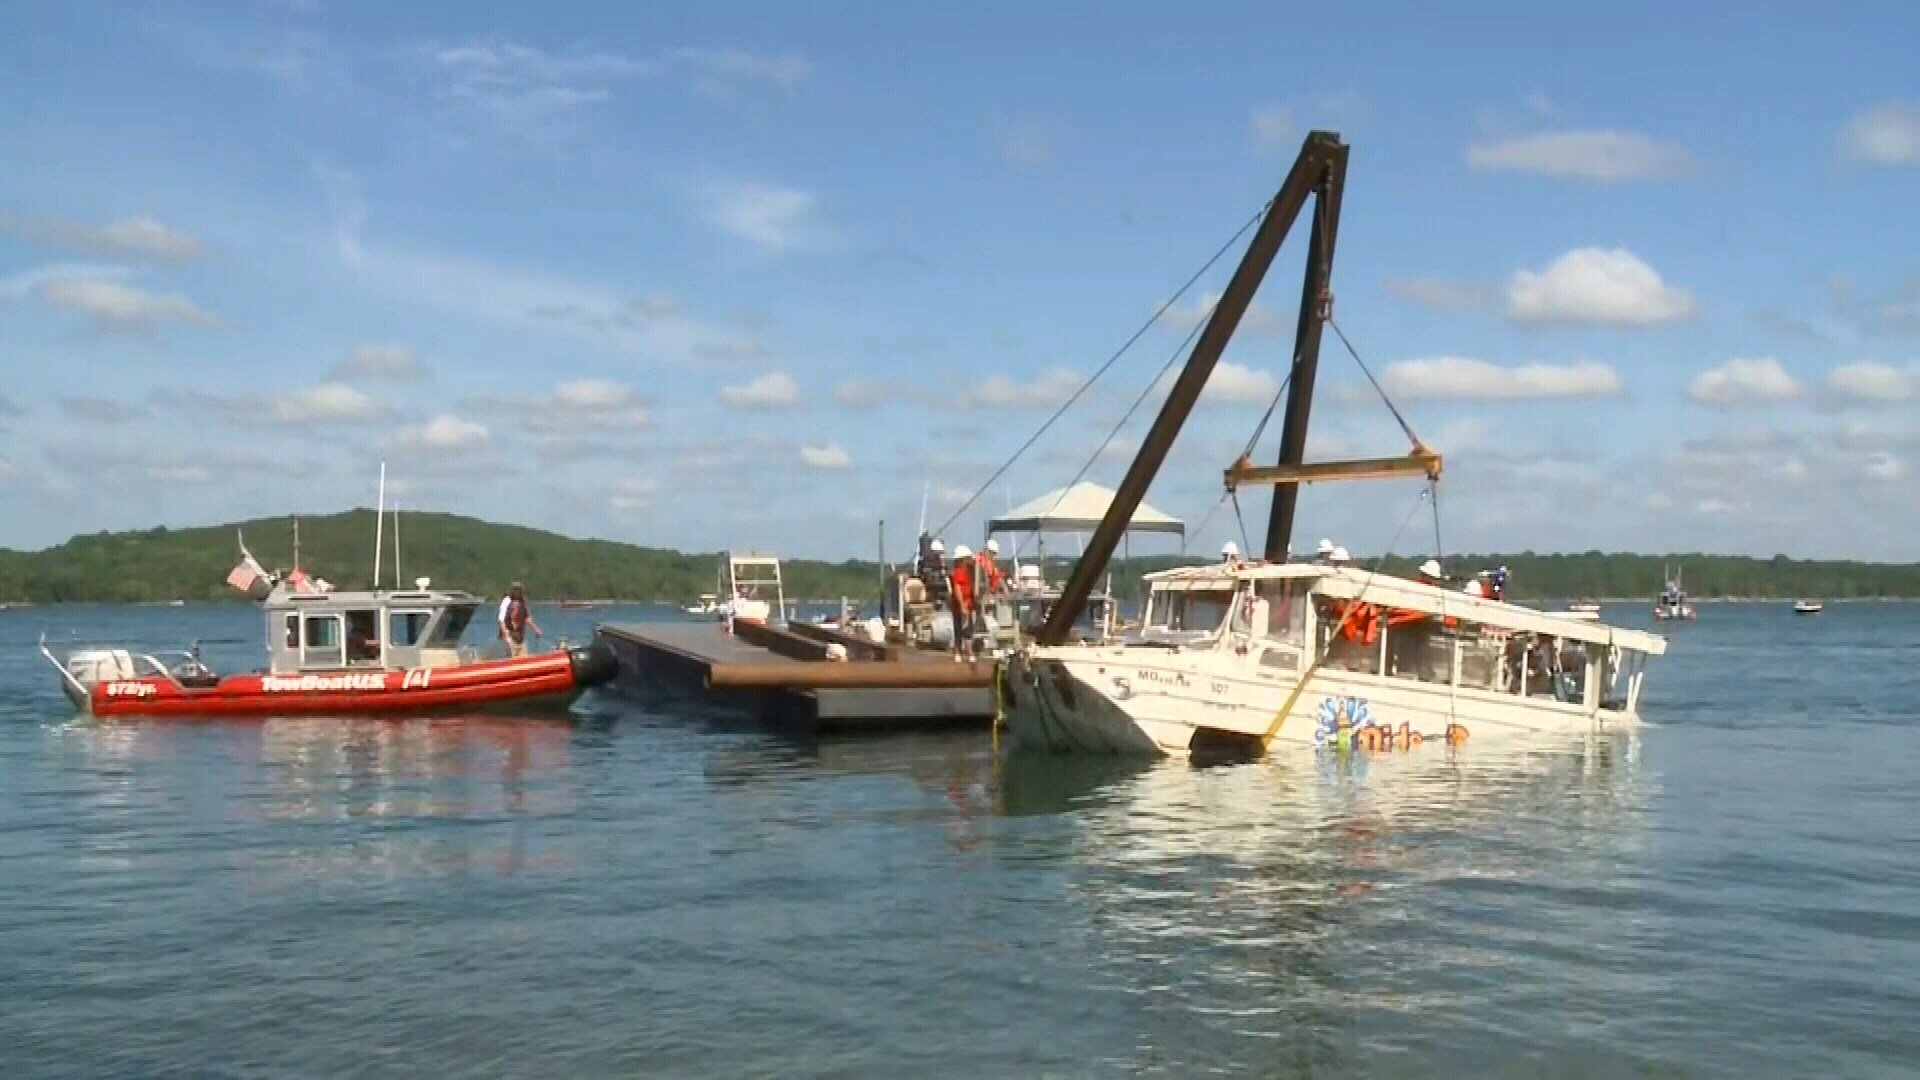 The duck boat that sank in Table Rock Lake in Branson, Mo., is raised Monday, July 23, 2018. The boat went down Thursday evening.